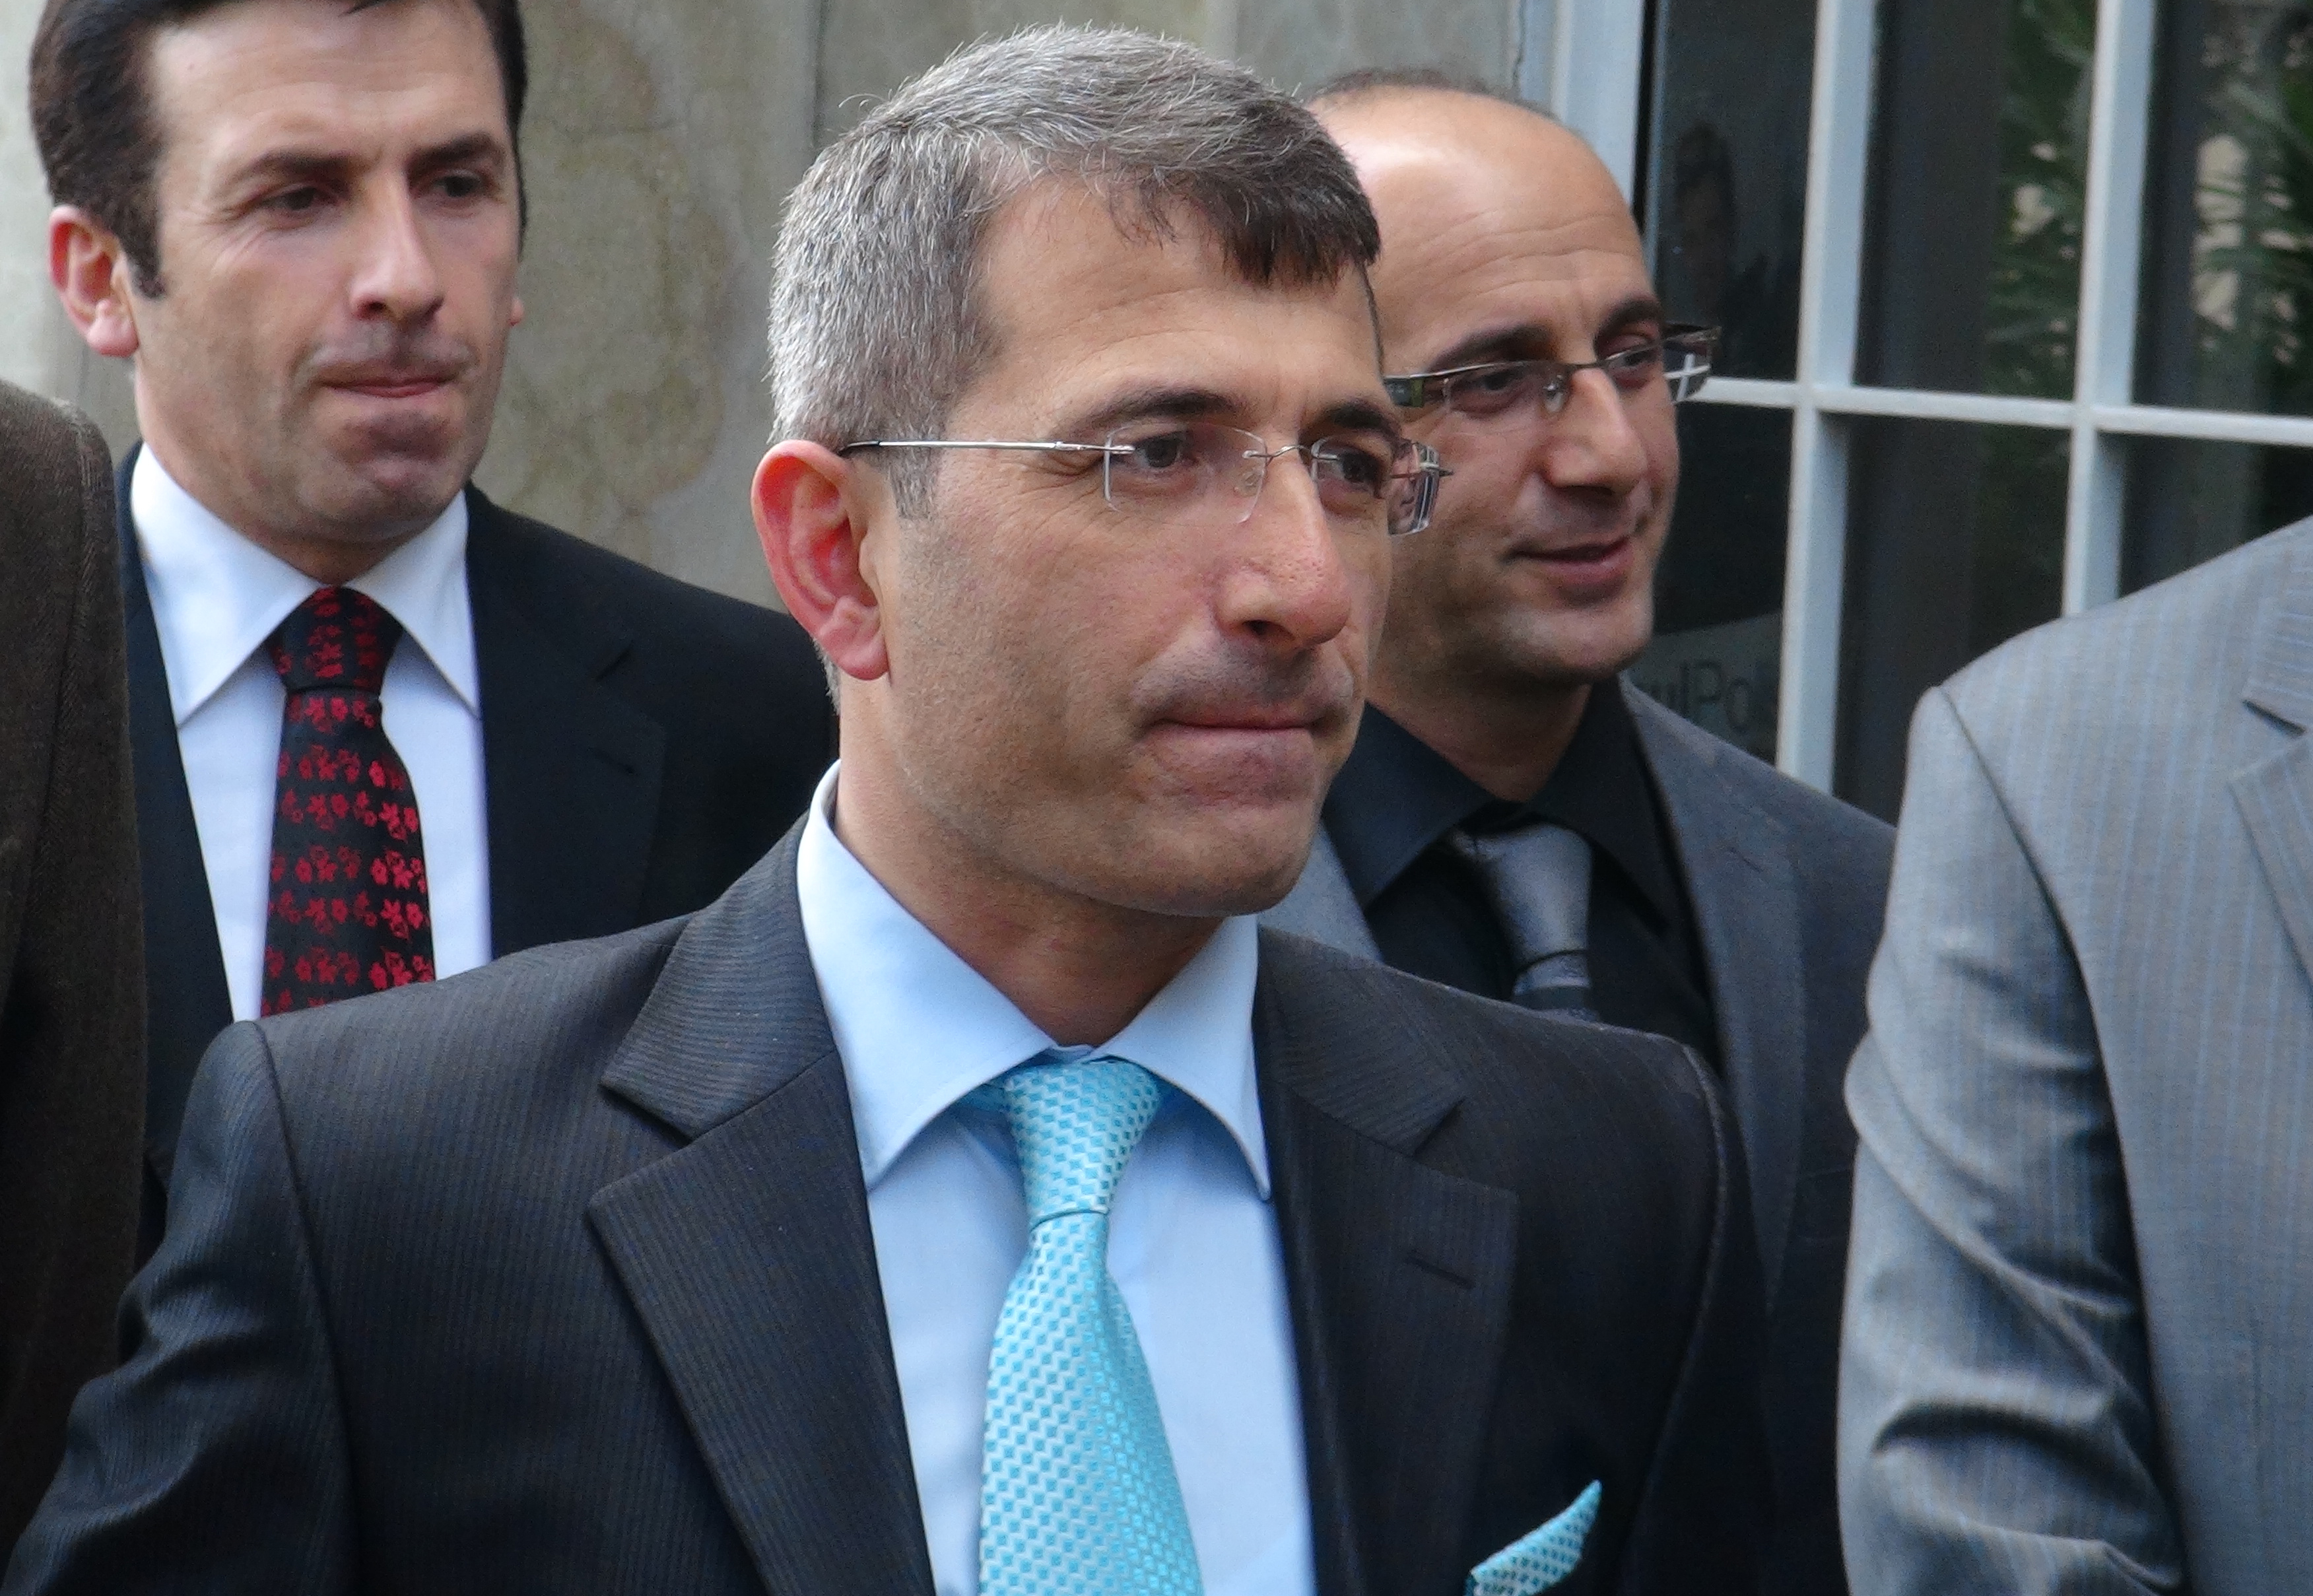 "This photo taken on December 26, 2013, shows Turkish prosecutor Muammer Akkas as he walks out from a courthouse in Istanbul. The Turkish prosecutor said today he had been prevented from expanding a corruption investigation that has touched the heart of the government, alleging pressure on the judiciary. ""All my colleagues and the public should be aware that I, as public prosecutor, have been prevented from launching an investigation,"" Muammer Akkas said in a statement. A high-level bribery and corruption investigation ensnaring former ministers and top businessmen has prompted a cabinet reshuffle by Prime Minister Recep Tayyip Erdogan, after three ministers stepped down in previous days. AFP PHOTO / CIHAN NEWS AGENCY / OSMAN ARSLAN ***TURKEY OUT*** (Photo credit should read Osman Arslan/AFP/Getty Images)"